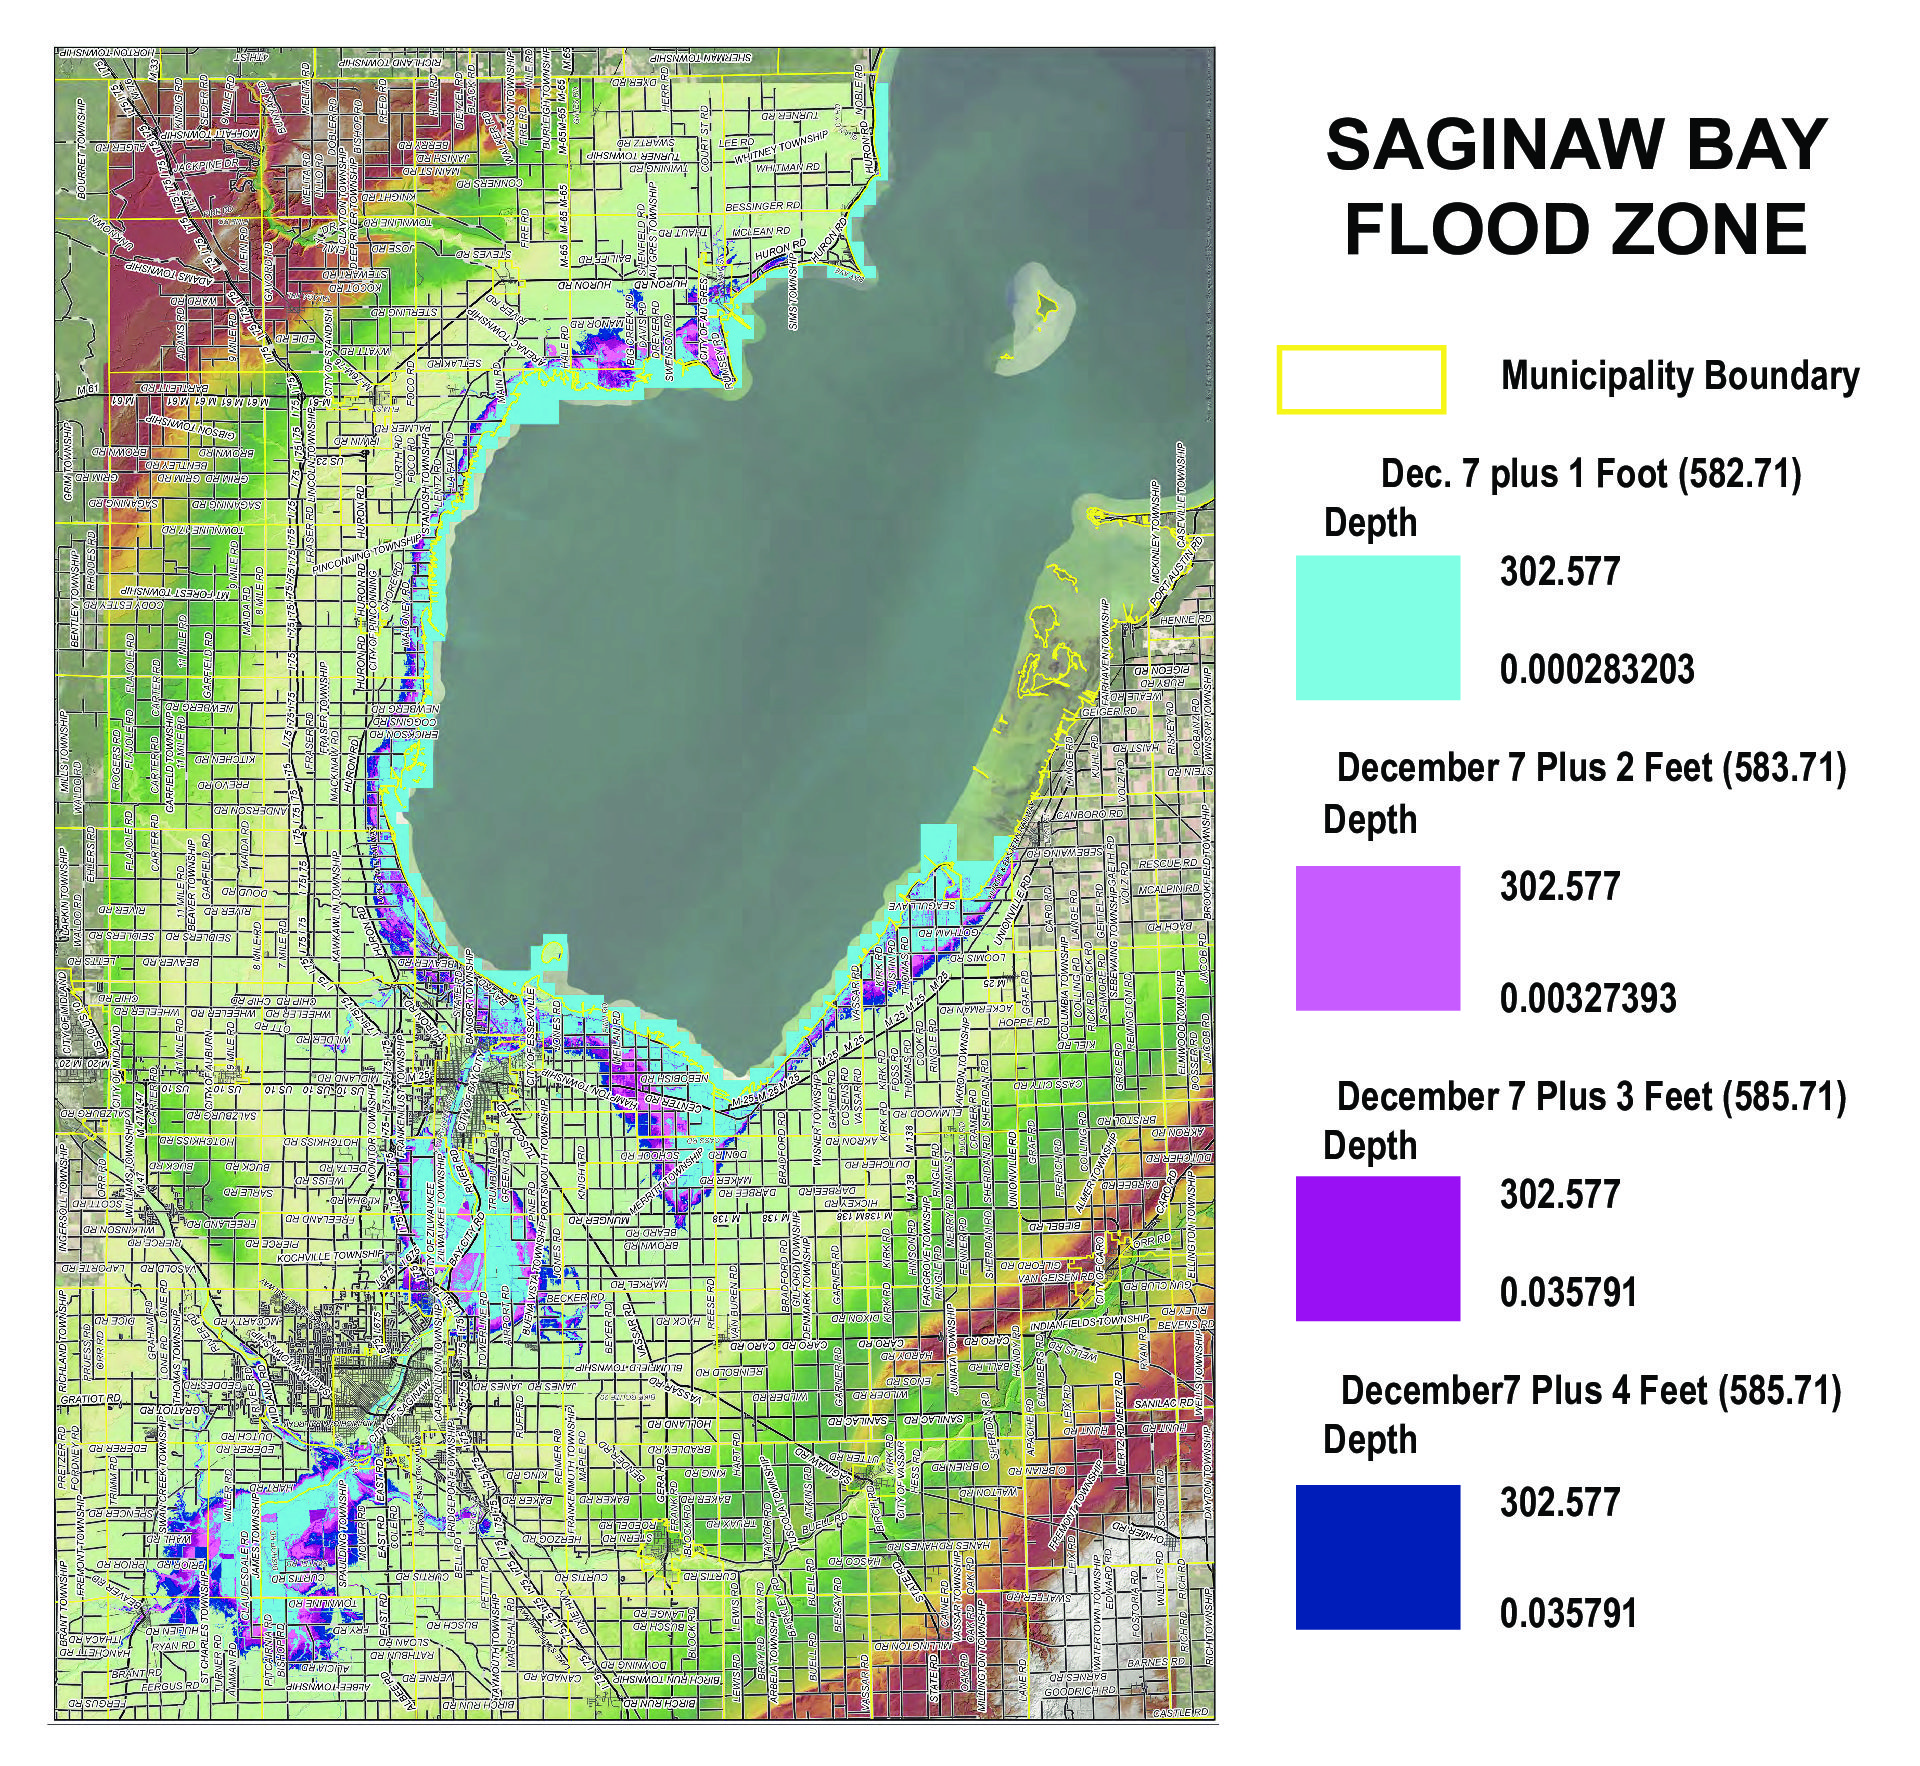 Water, water everywhere: County officials brace for rising water levels on Great Lakes, Saginaw Bay